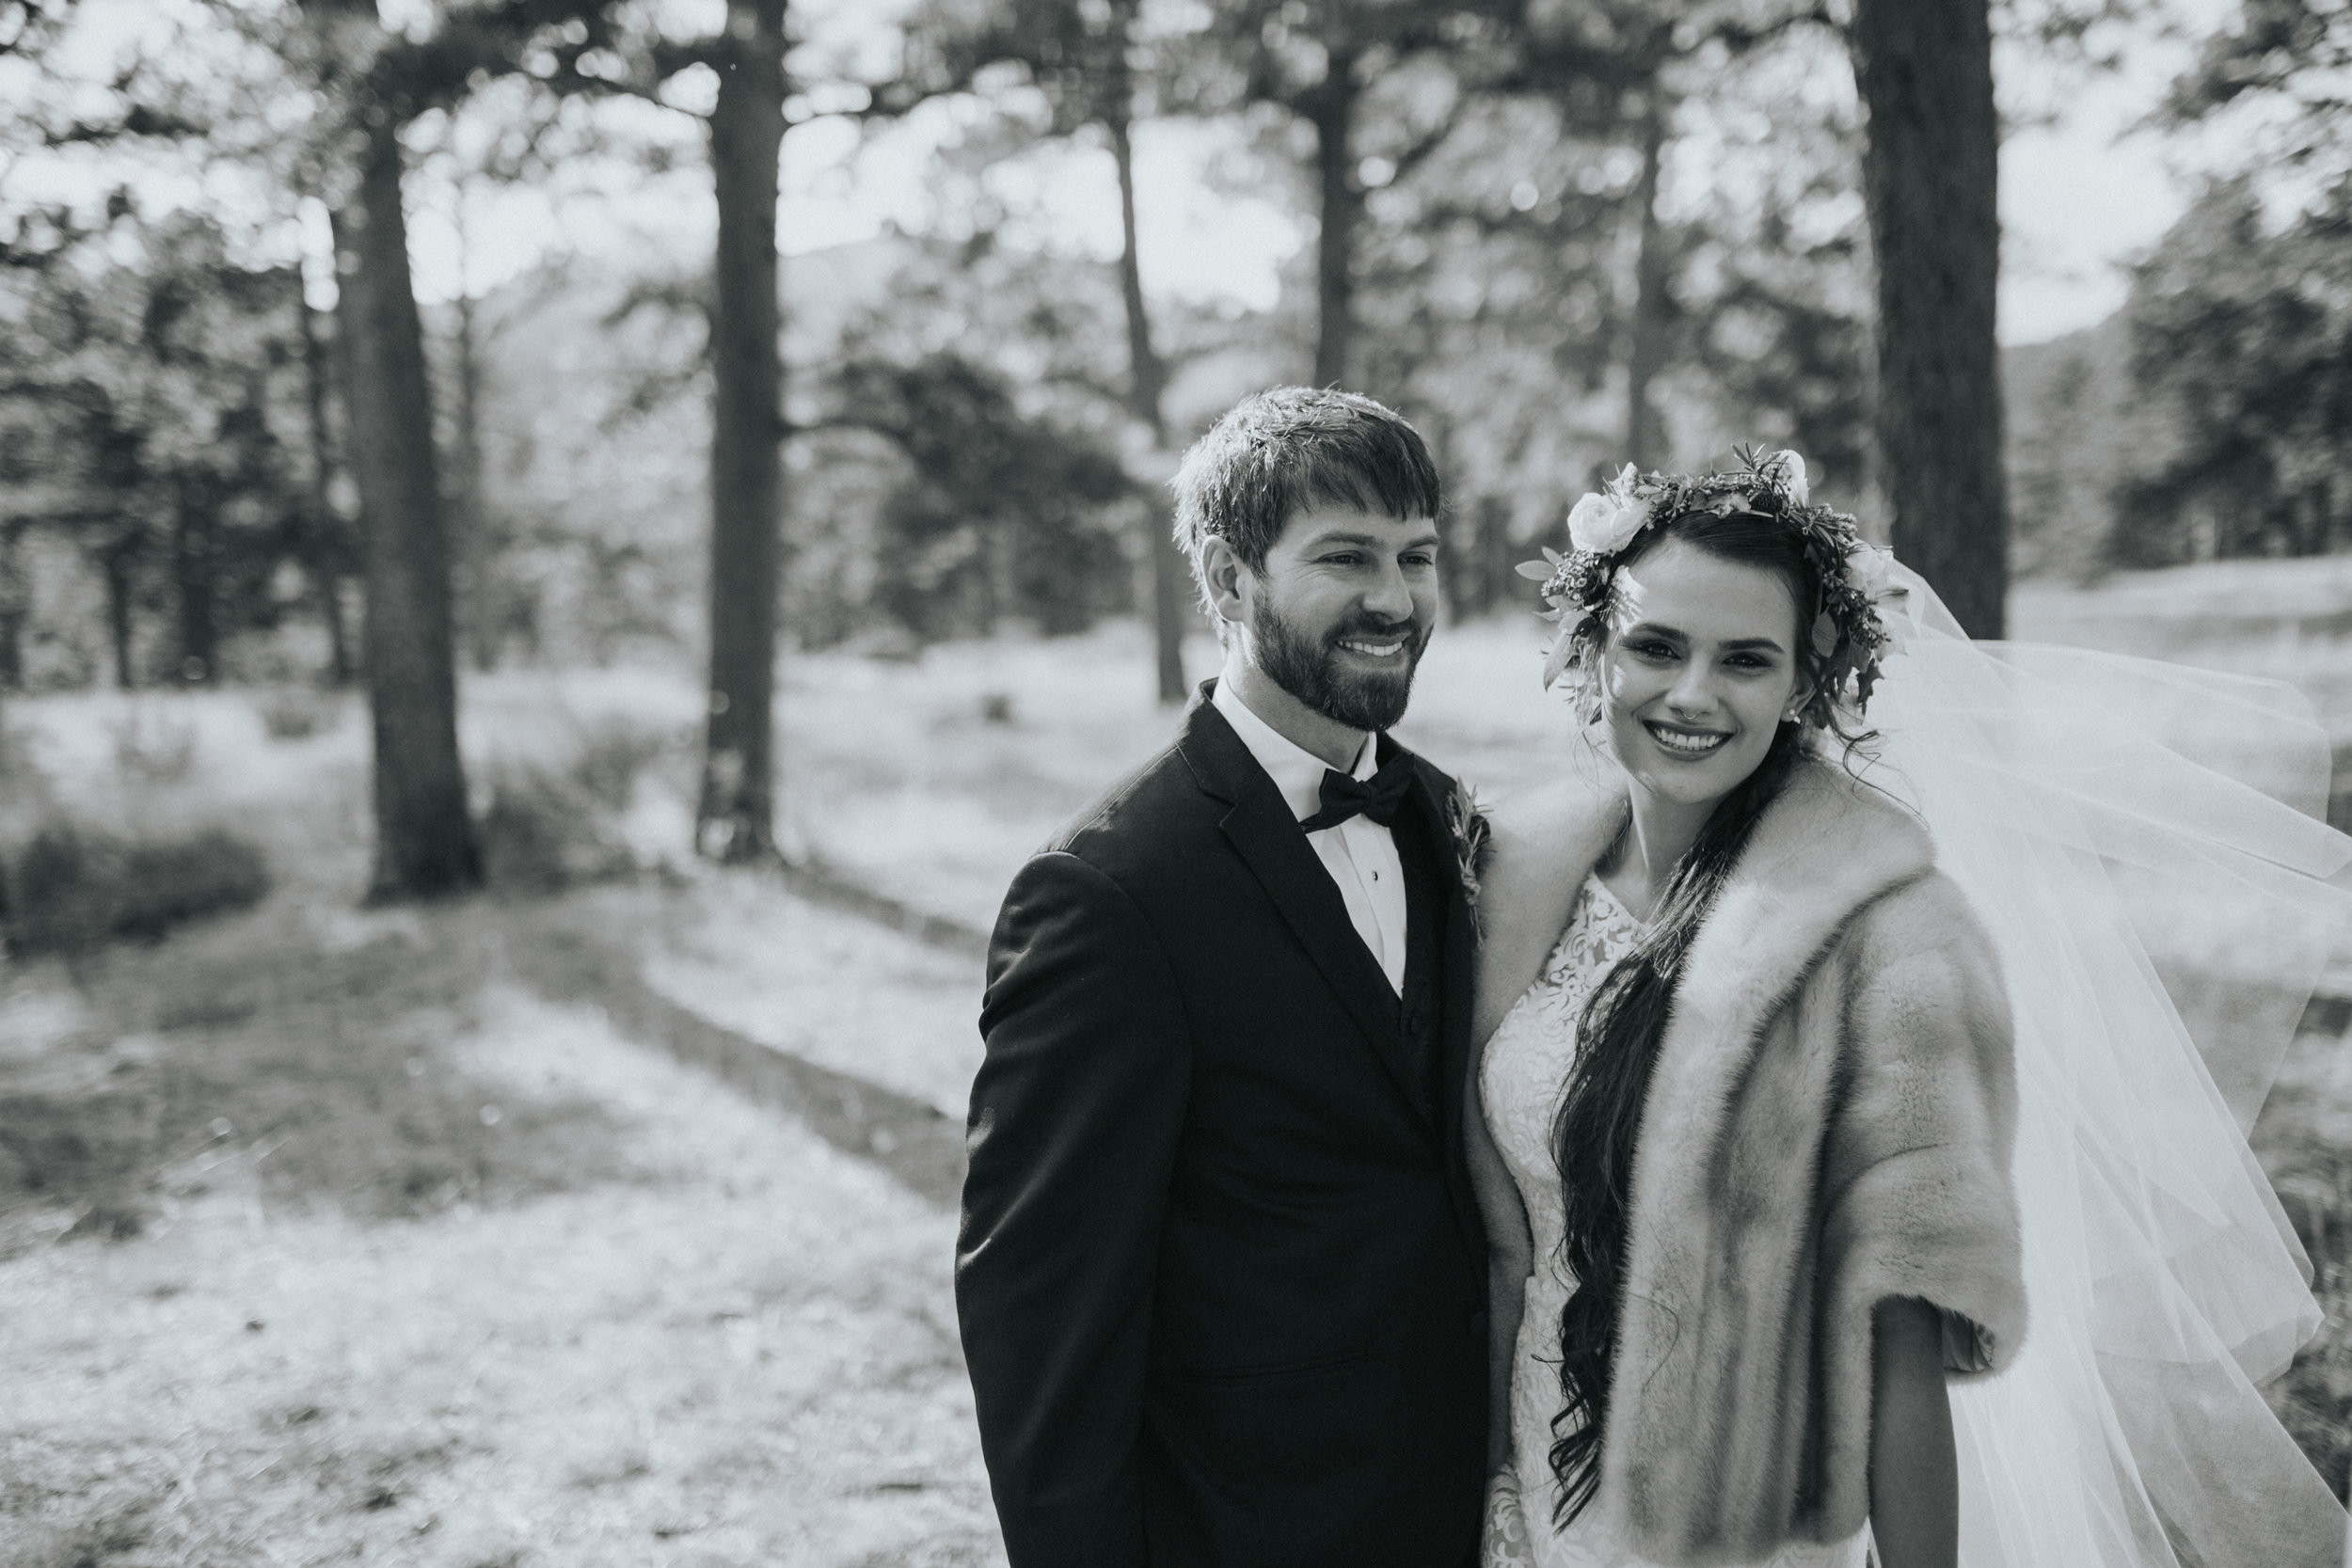 portraitshalloweenwedding-12.jpg